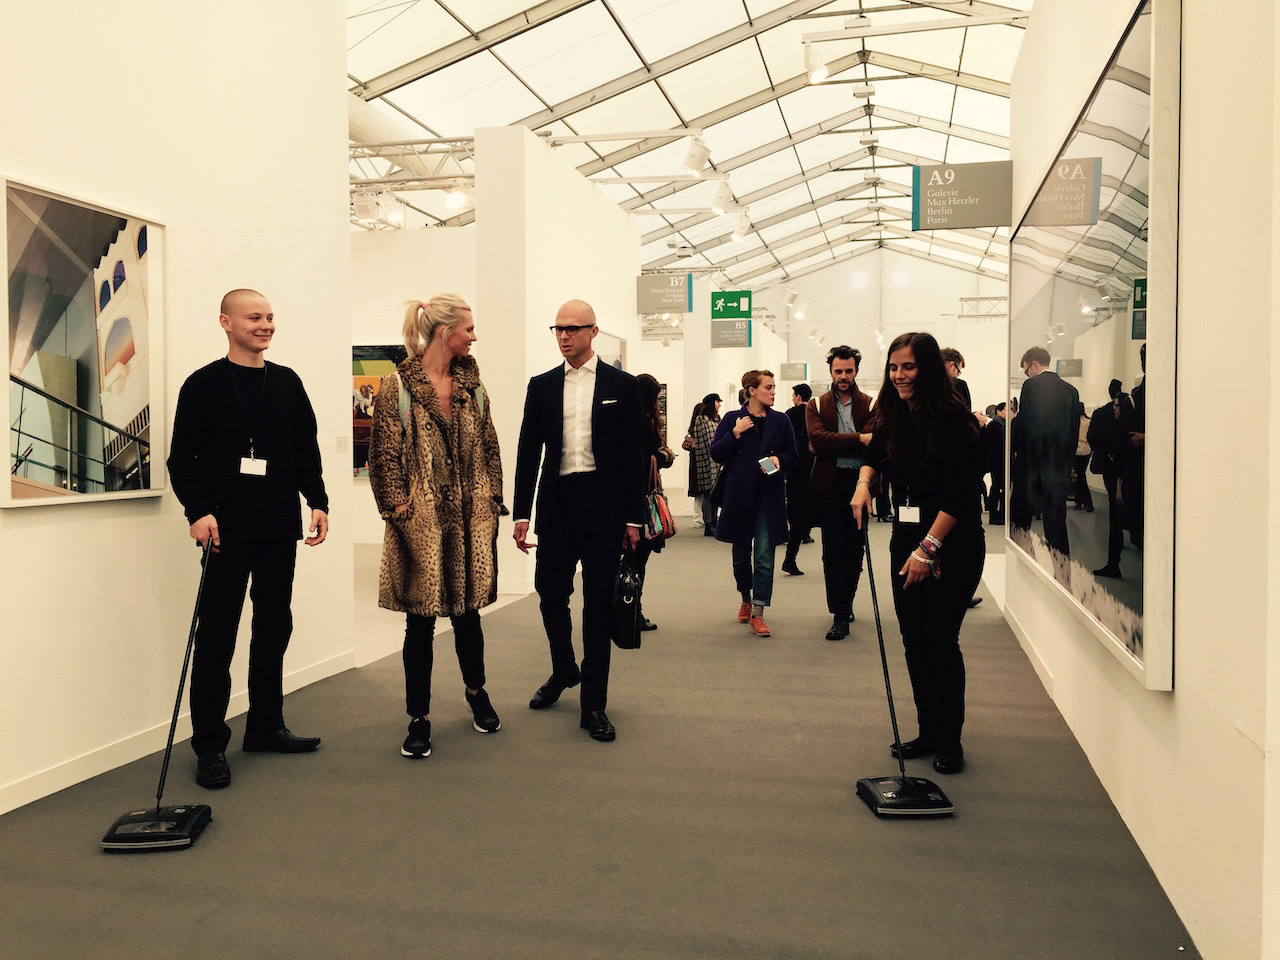 Carpet sweepers at Frieze London 2015 (all photos by the author for Hyperallergic)